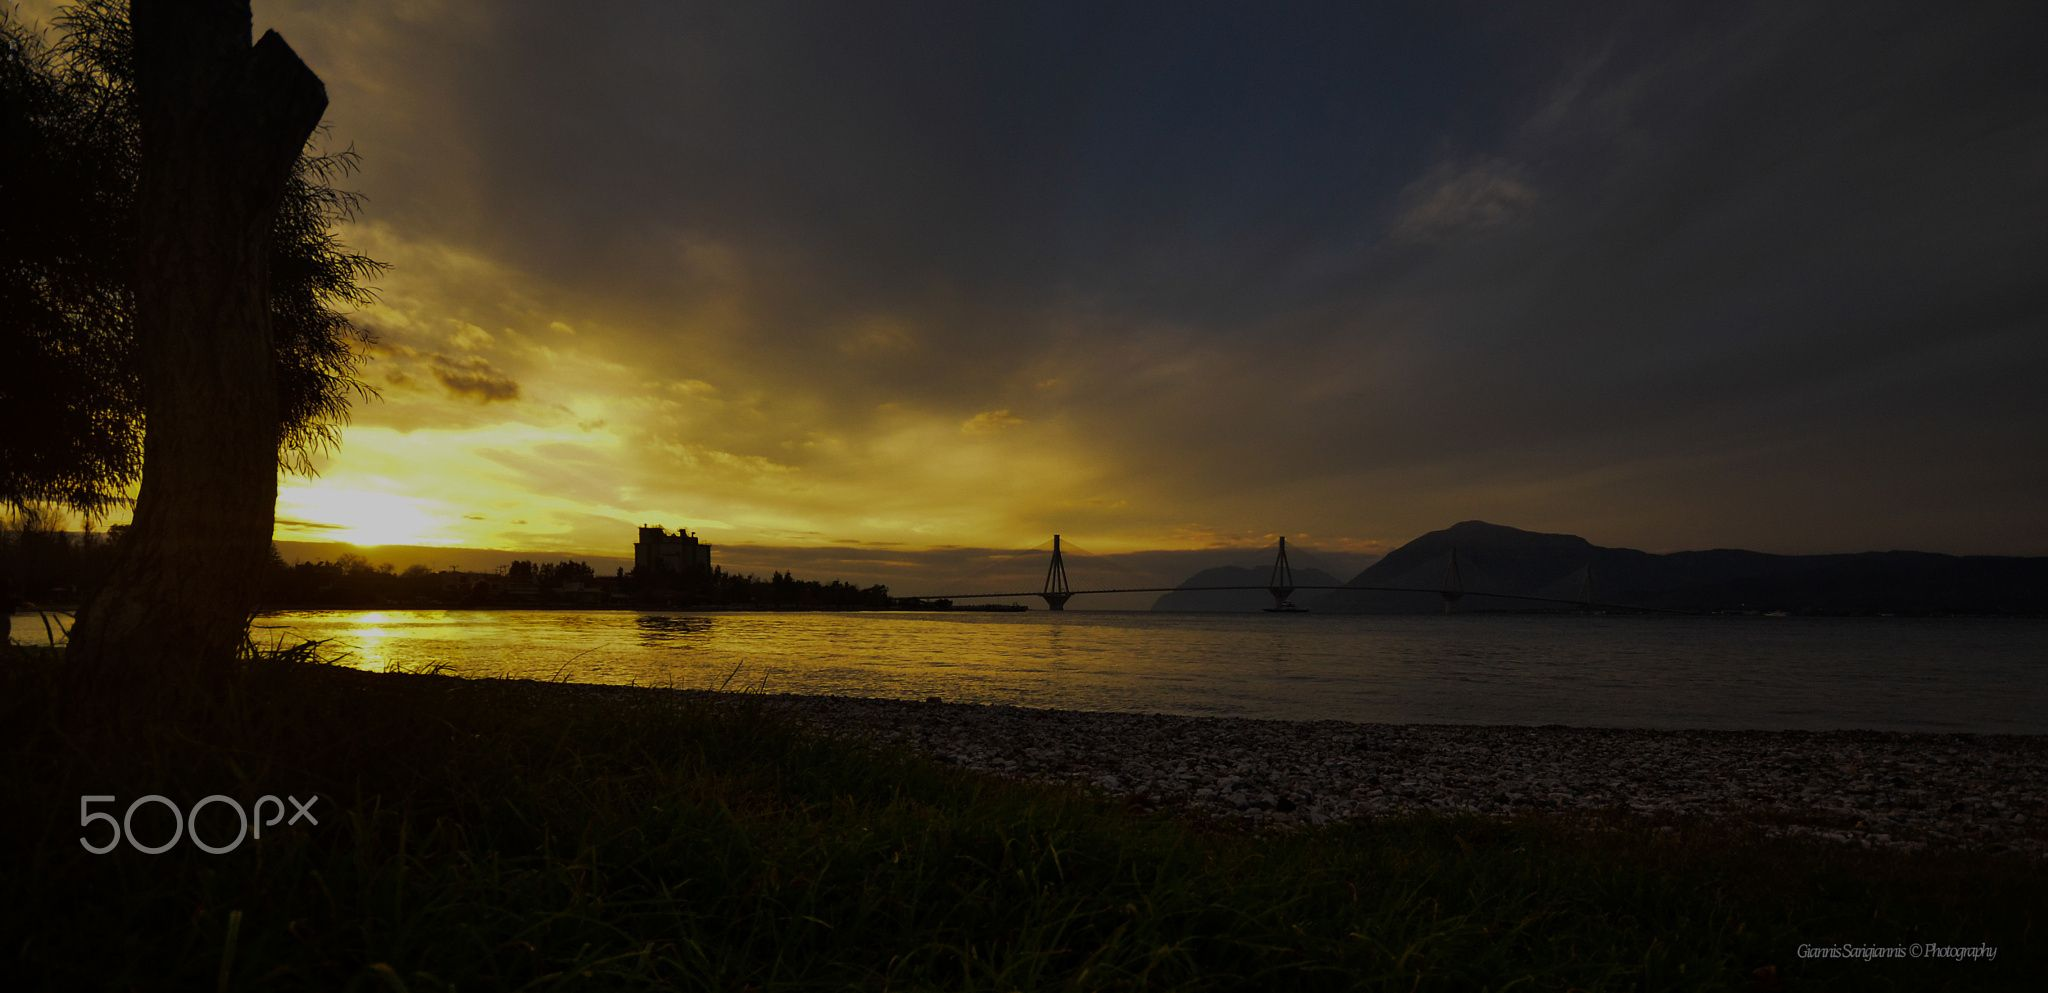 Rio  Sunset !! - Rio  Sunset !! Vote if you like it an follow me for more...